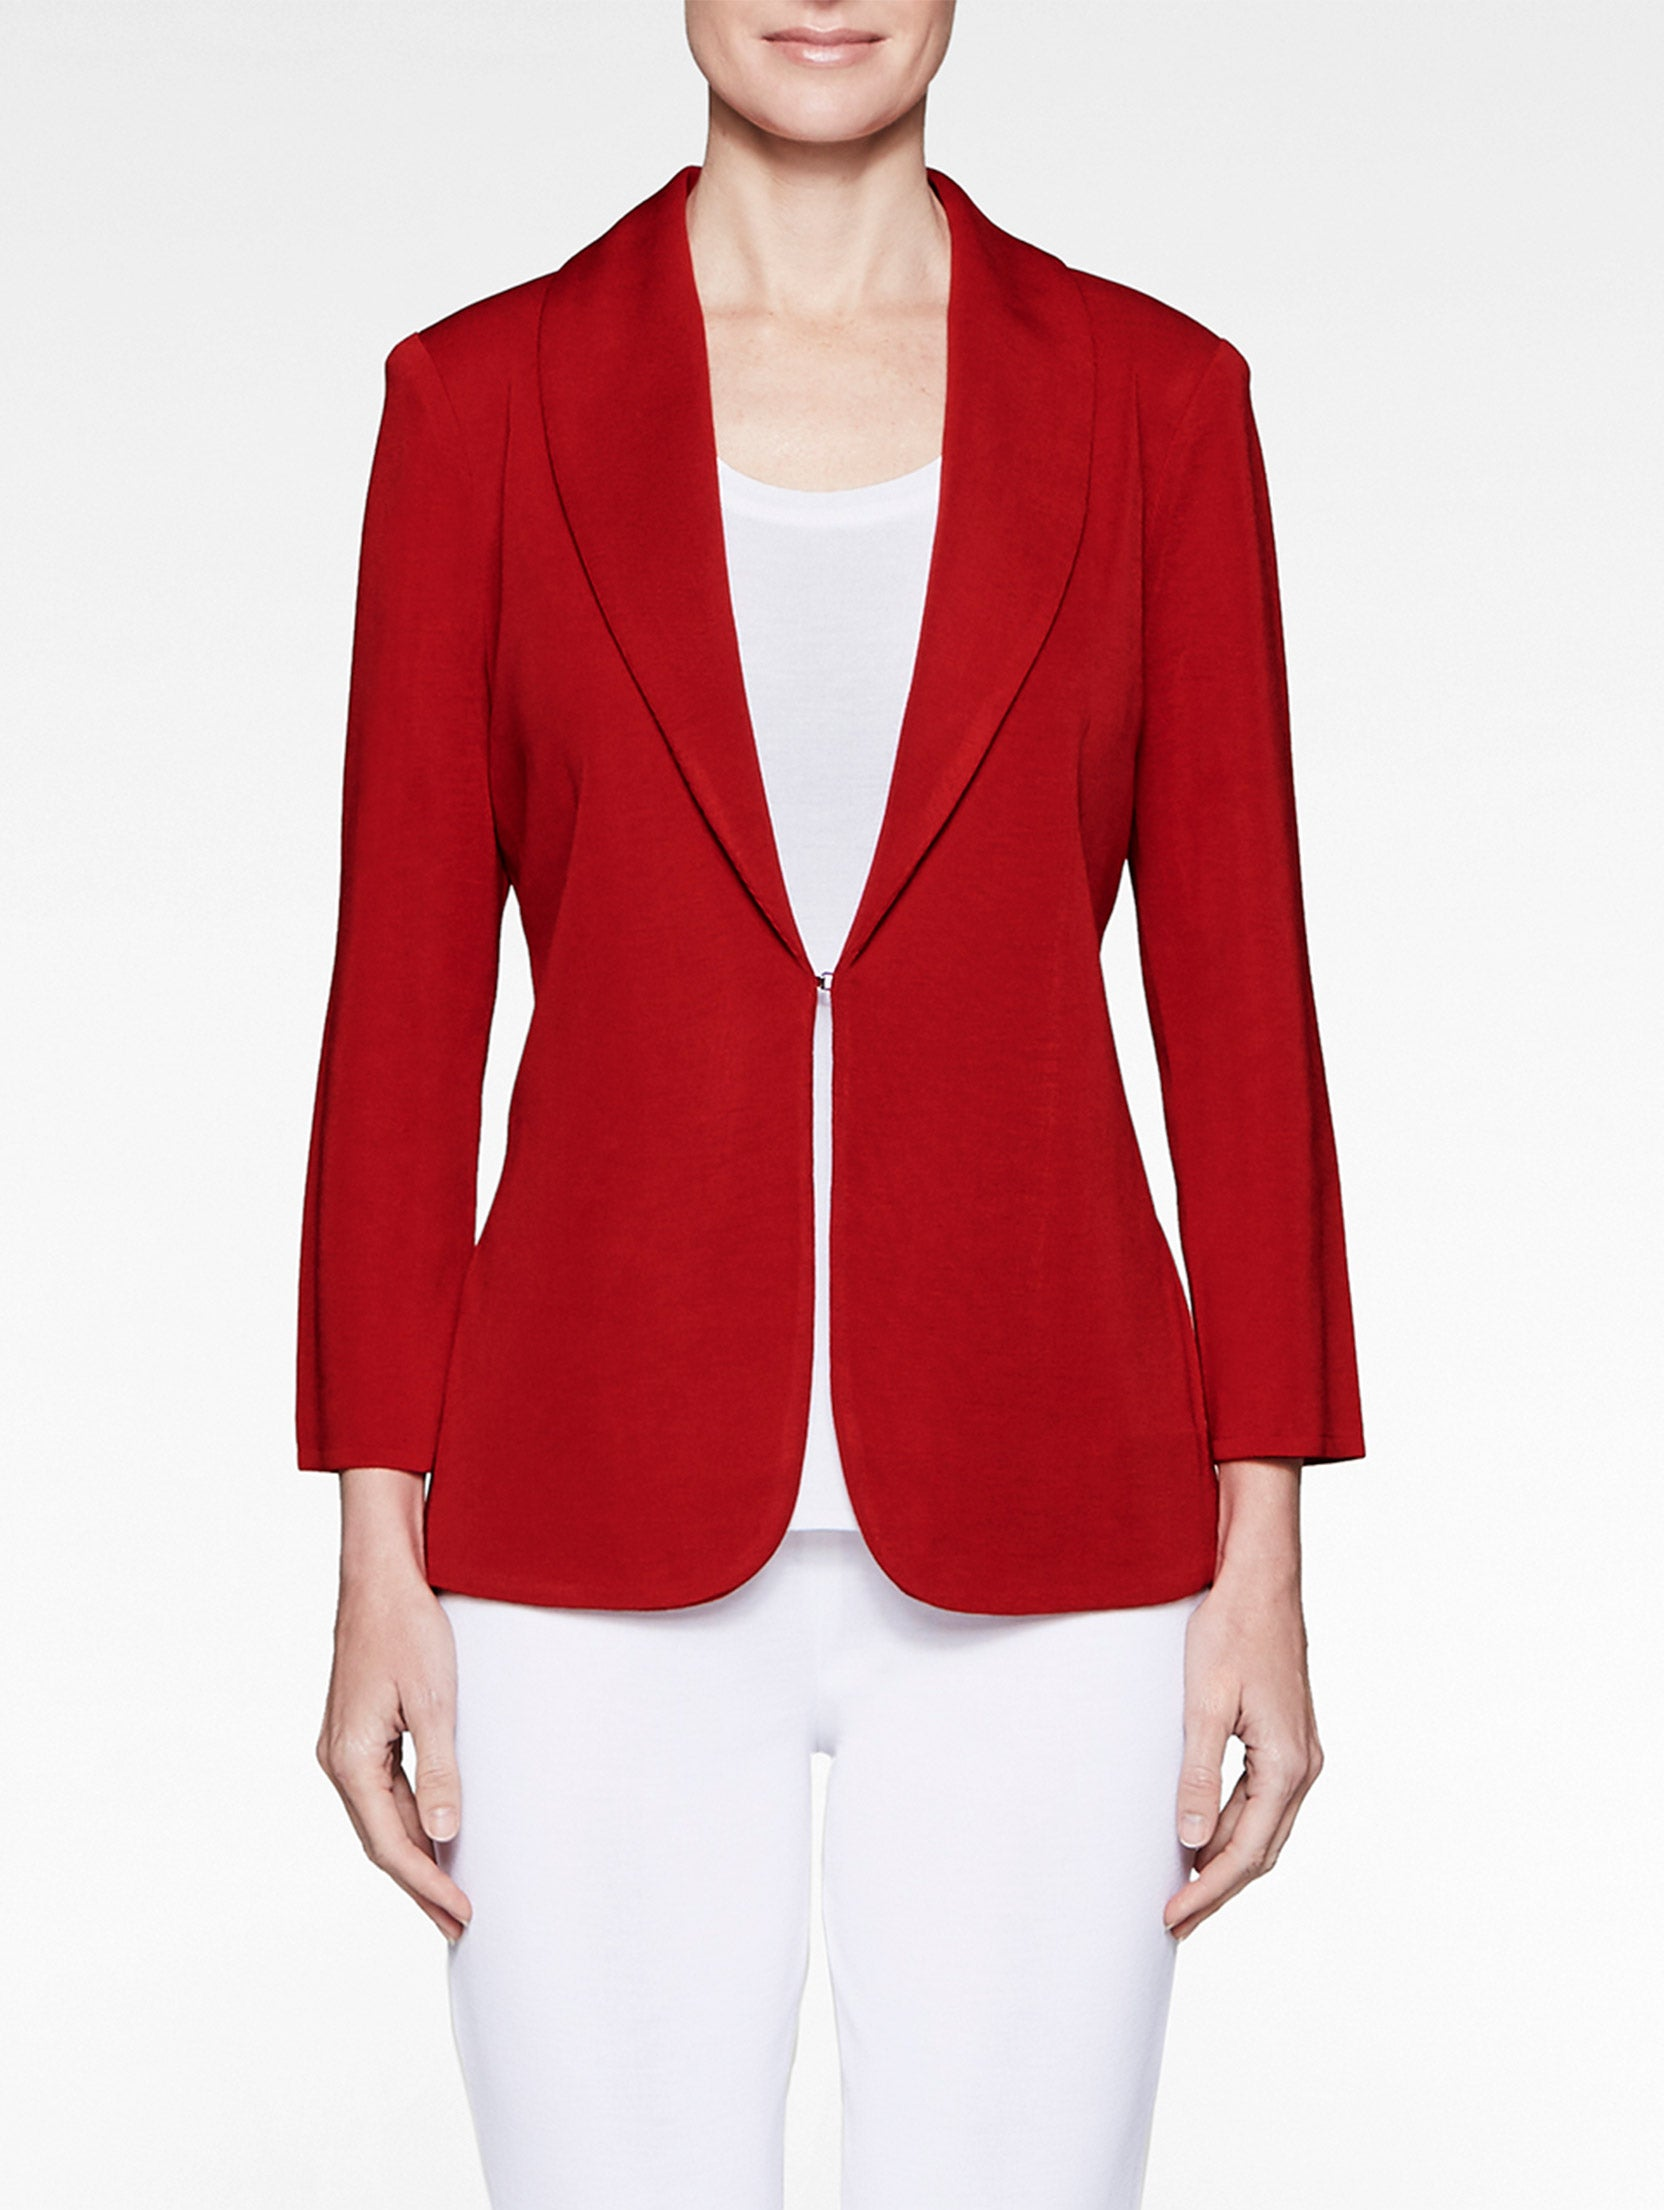 Shawl Collar Fitted Knit Jacket, Red